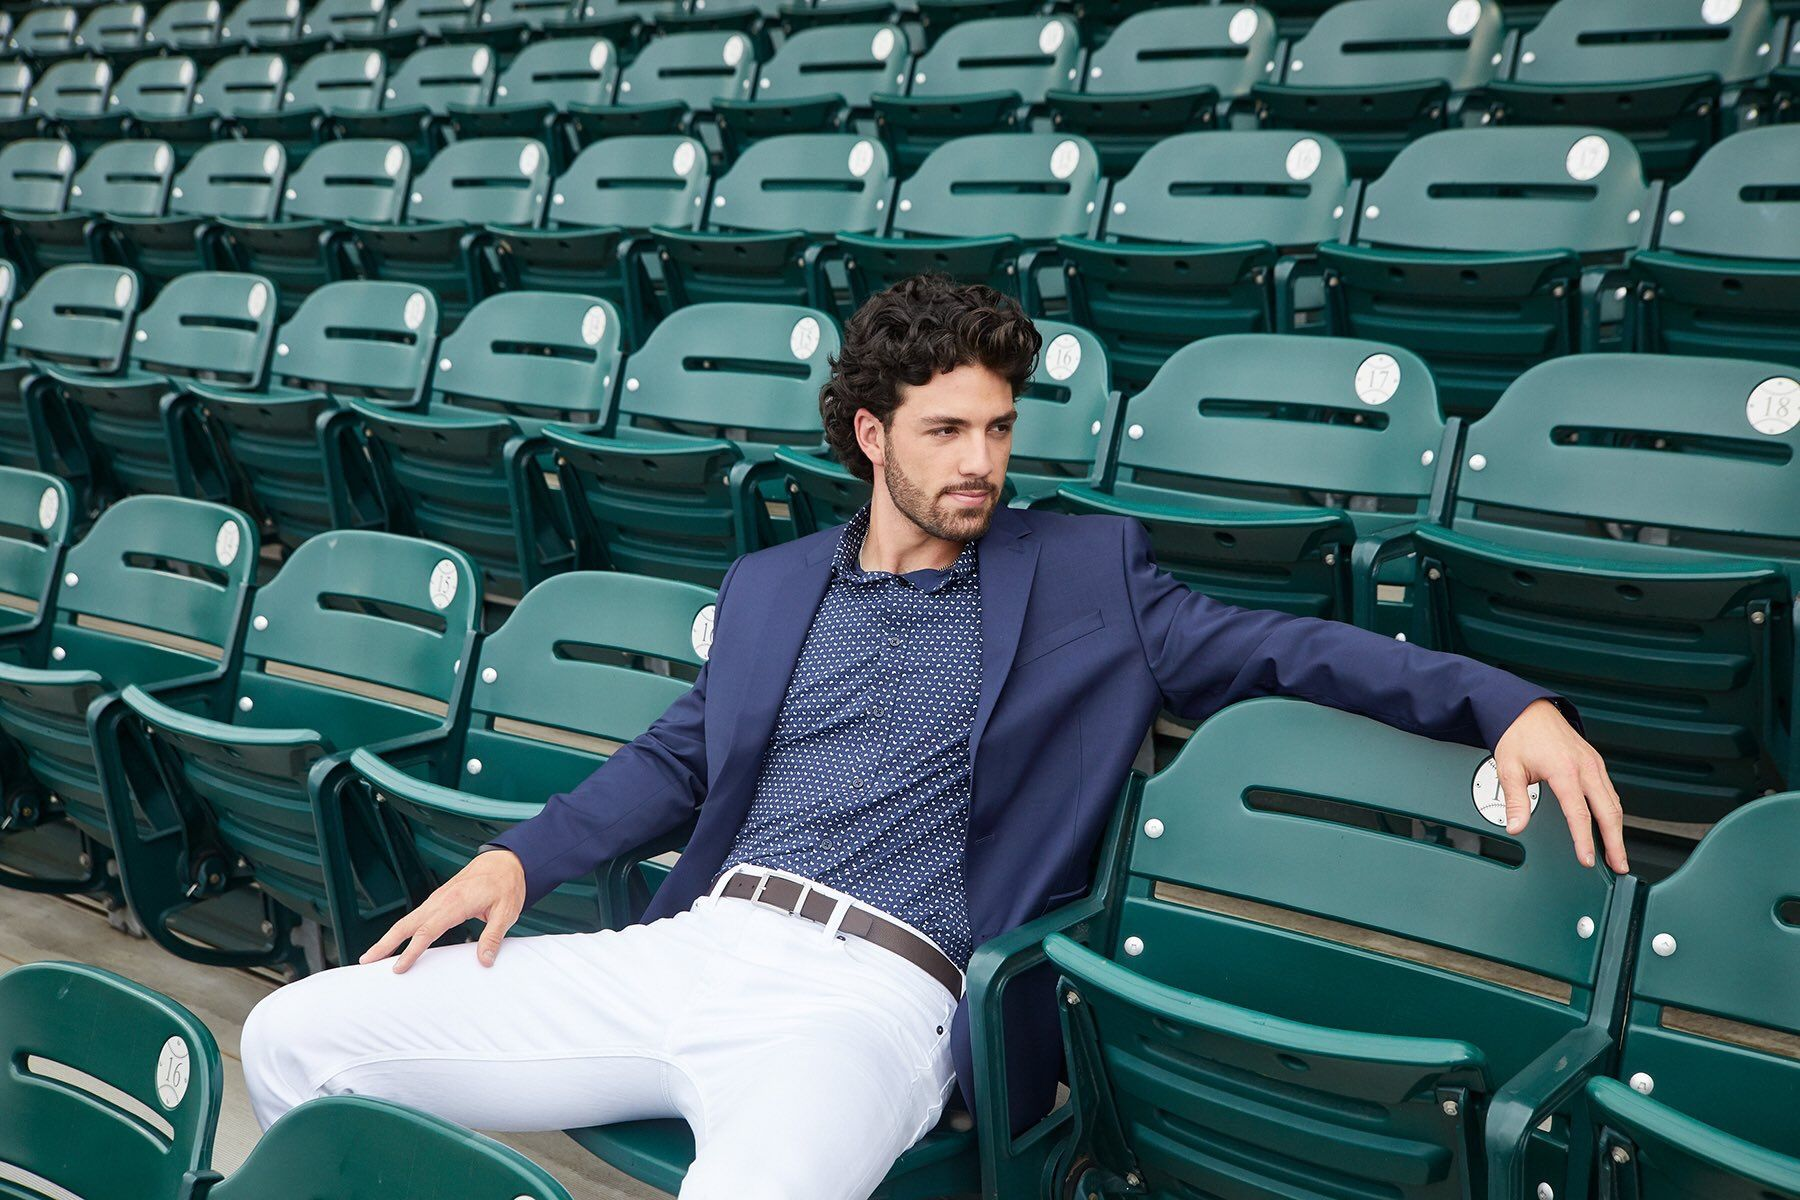 Pin By Rori Blount On Atlanta Braves In 2020 Atlanta Braves Dansby Swanson Atlanta Braves Baseball